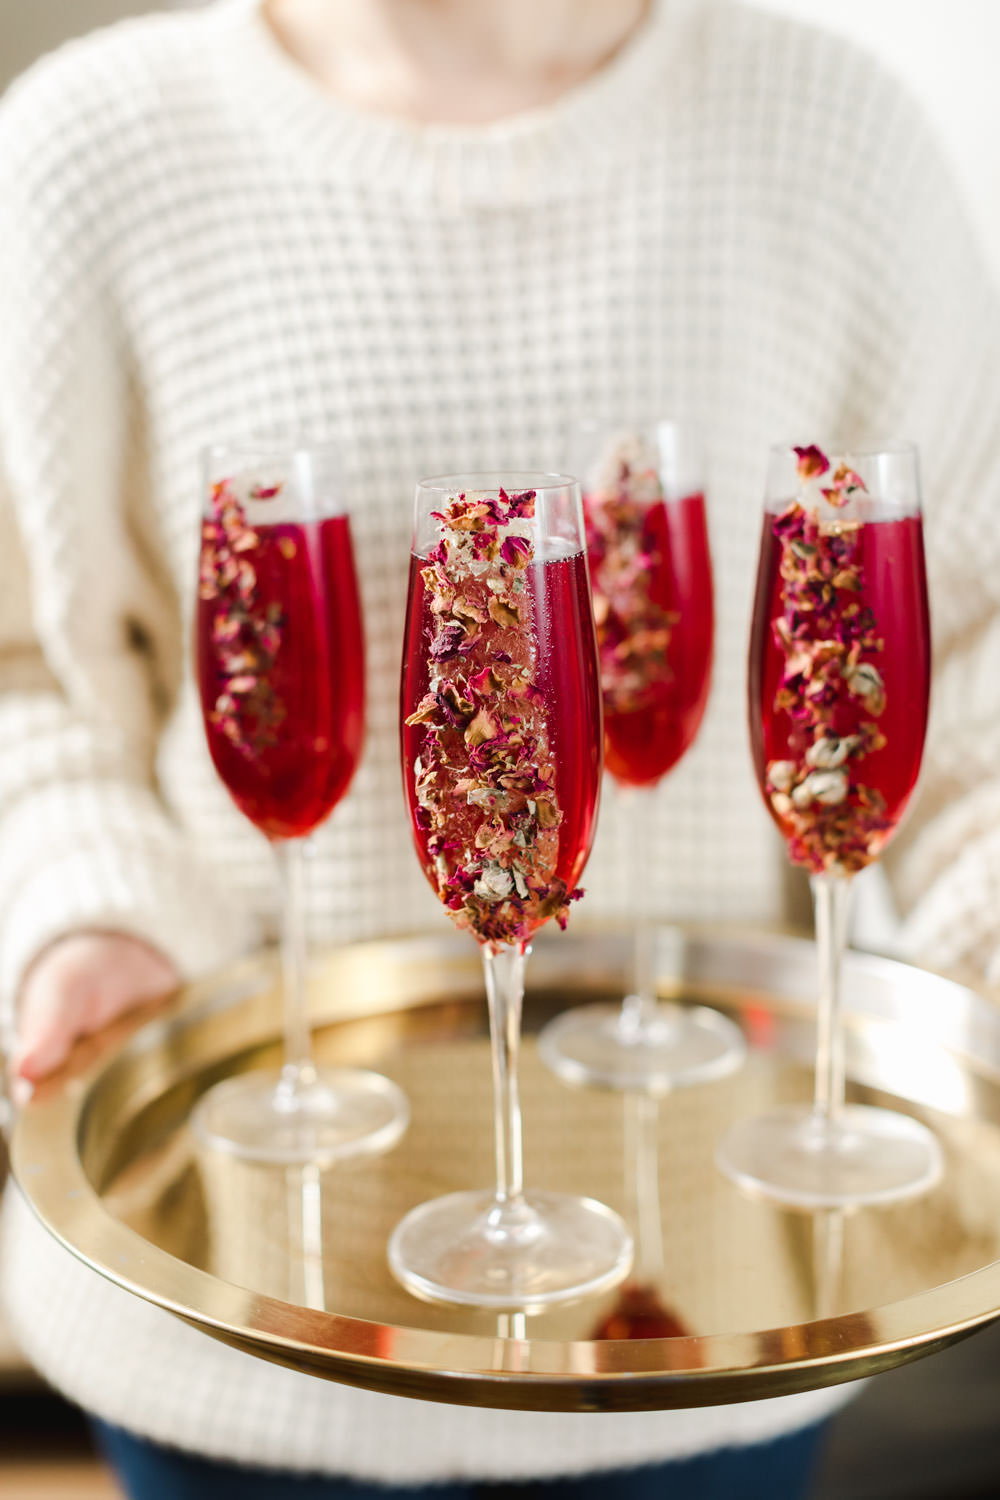 Pomegranate bellinis with decorated glasses for New Years, Snake Oil Cocktail's Fall Wedding Cocktails, Cavin Elizabeth Photography